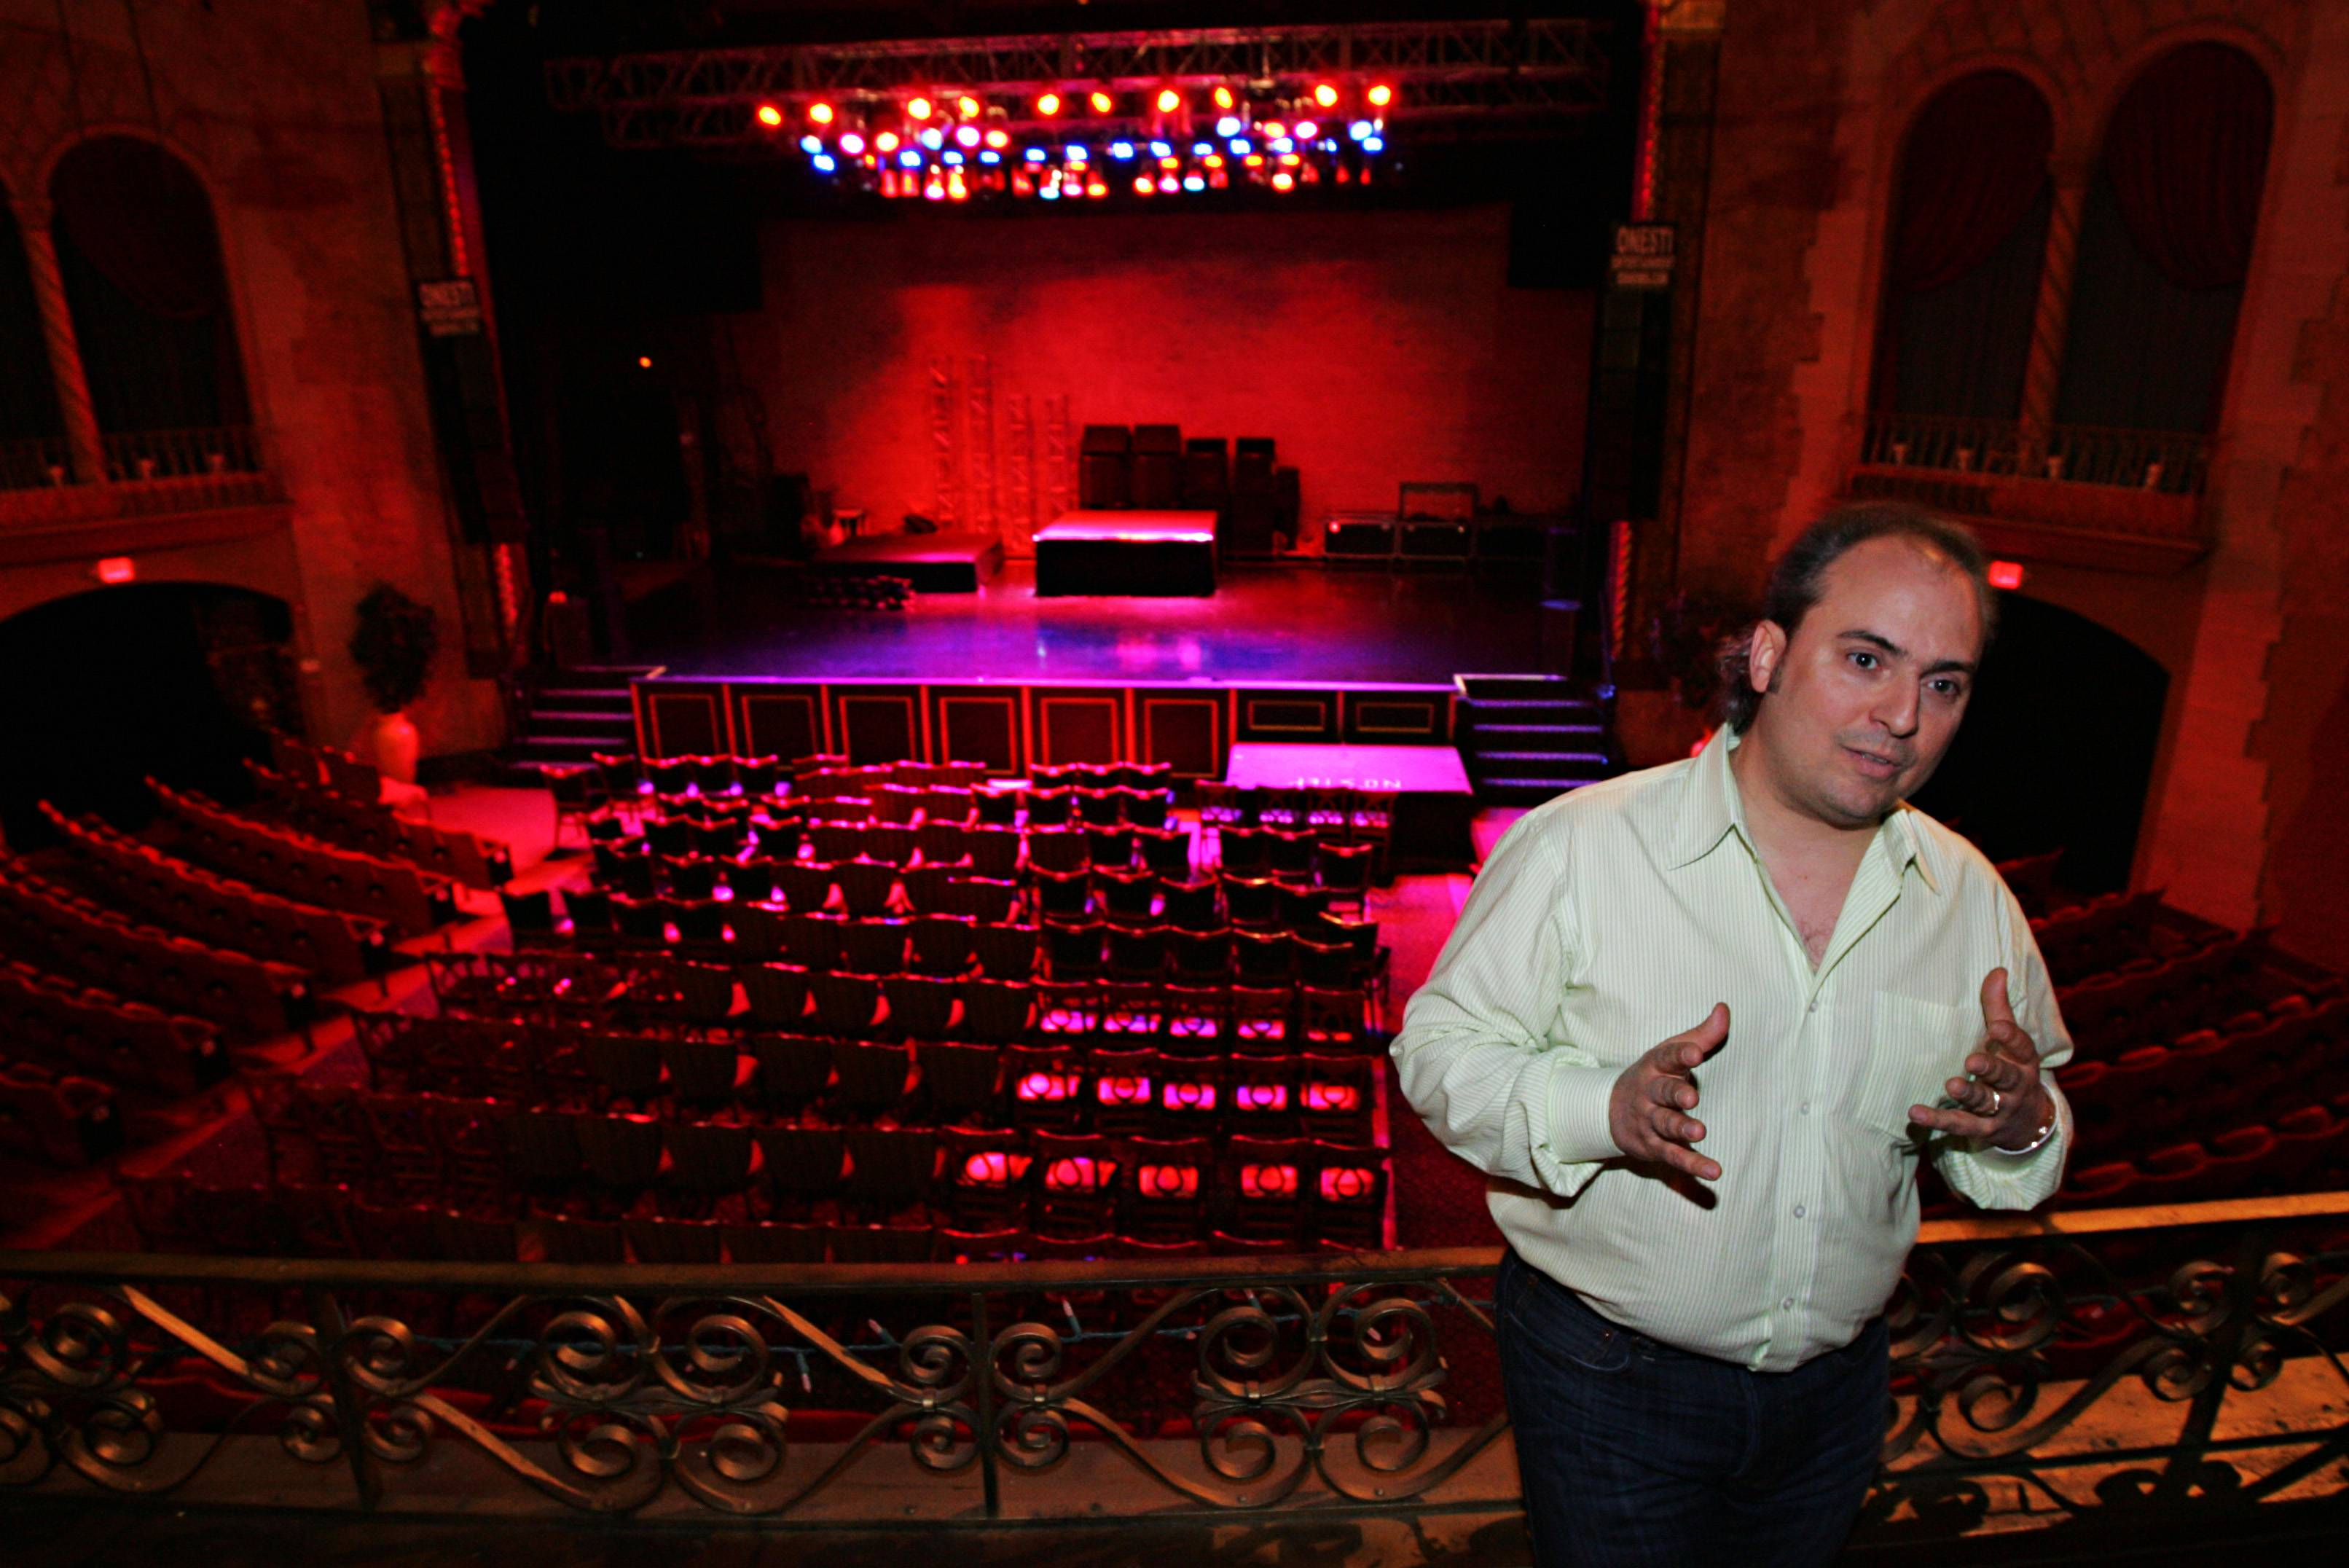 Arcada Theater owner Ron Onesti has been able to revitalize one aging suburban downtown theater. Now he's looking to do the same in Des Plaines.